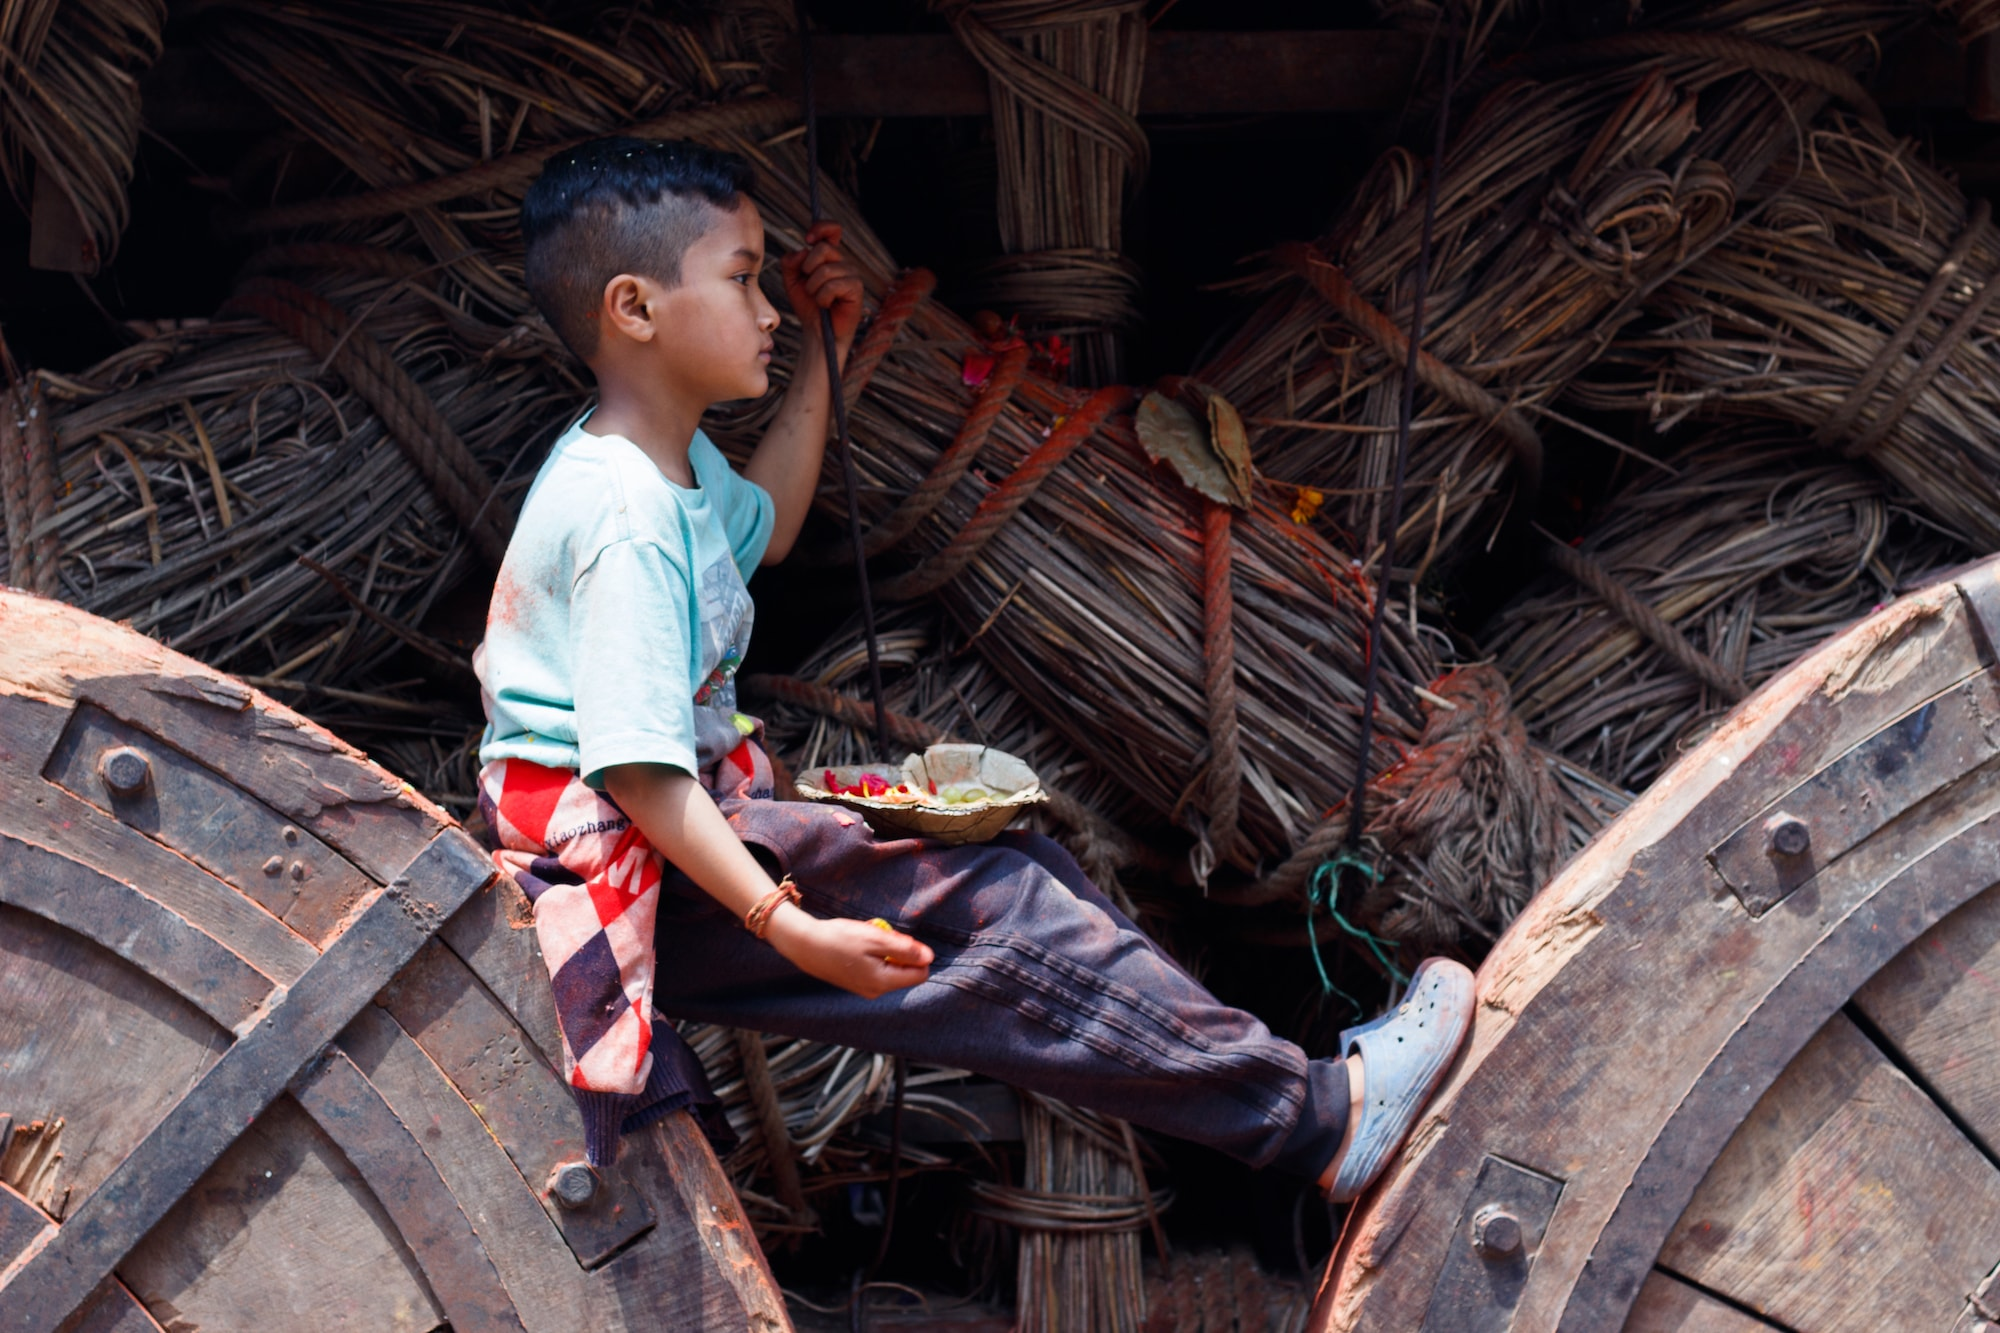 A young boy sitting between wheels of a giant chariot at Kathmandu Durbar Square